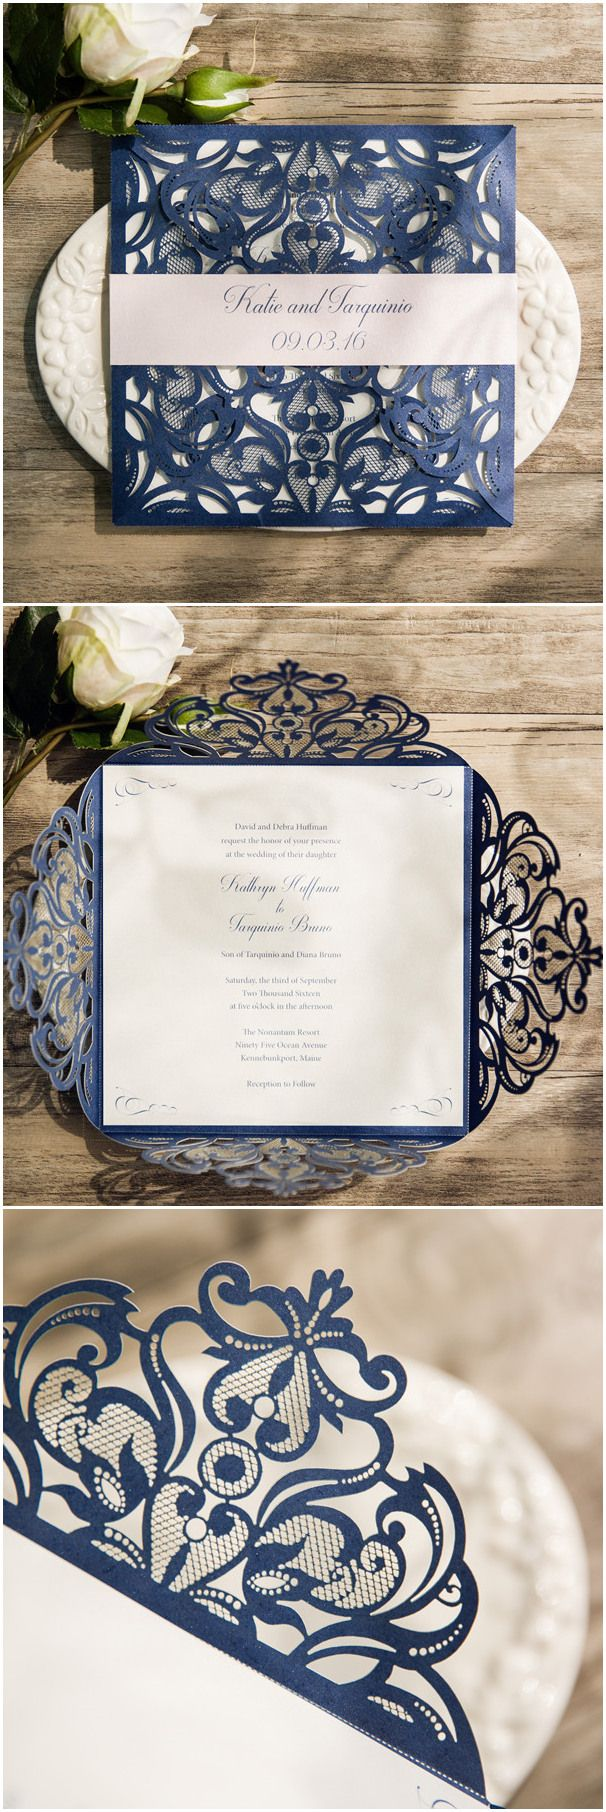 elegant navy blue laser cut wedding invitations